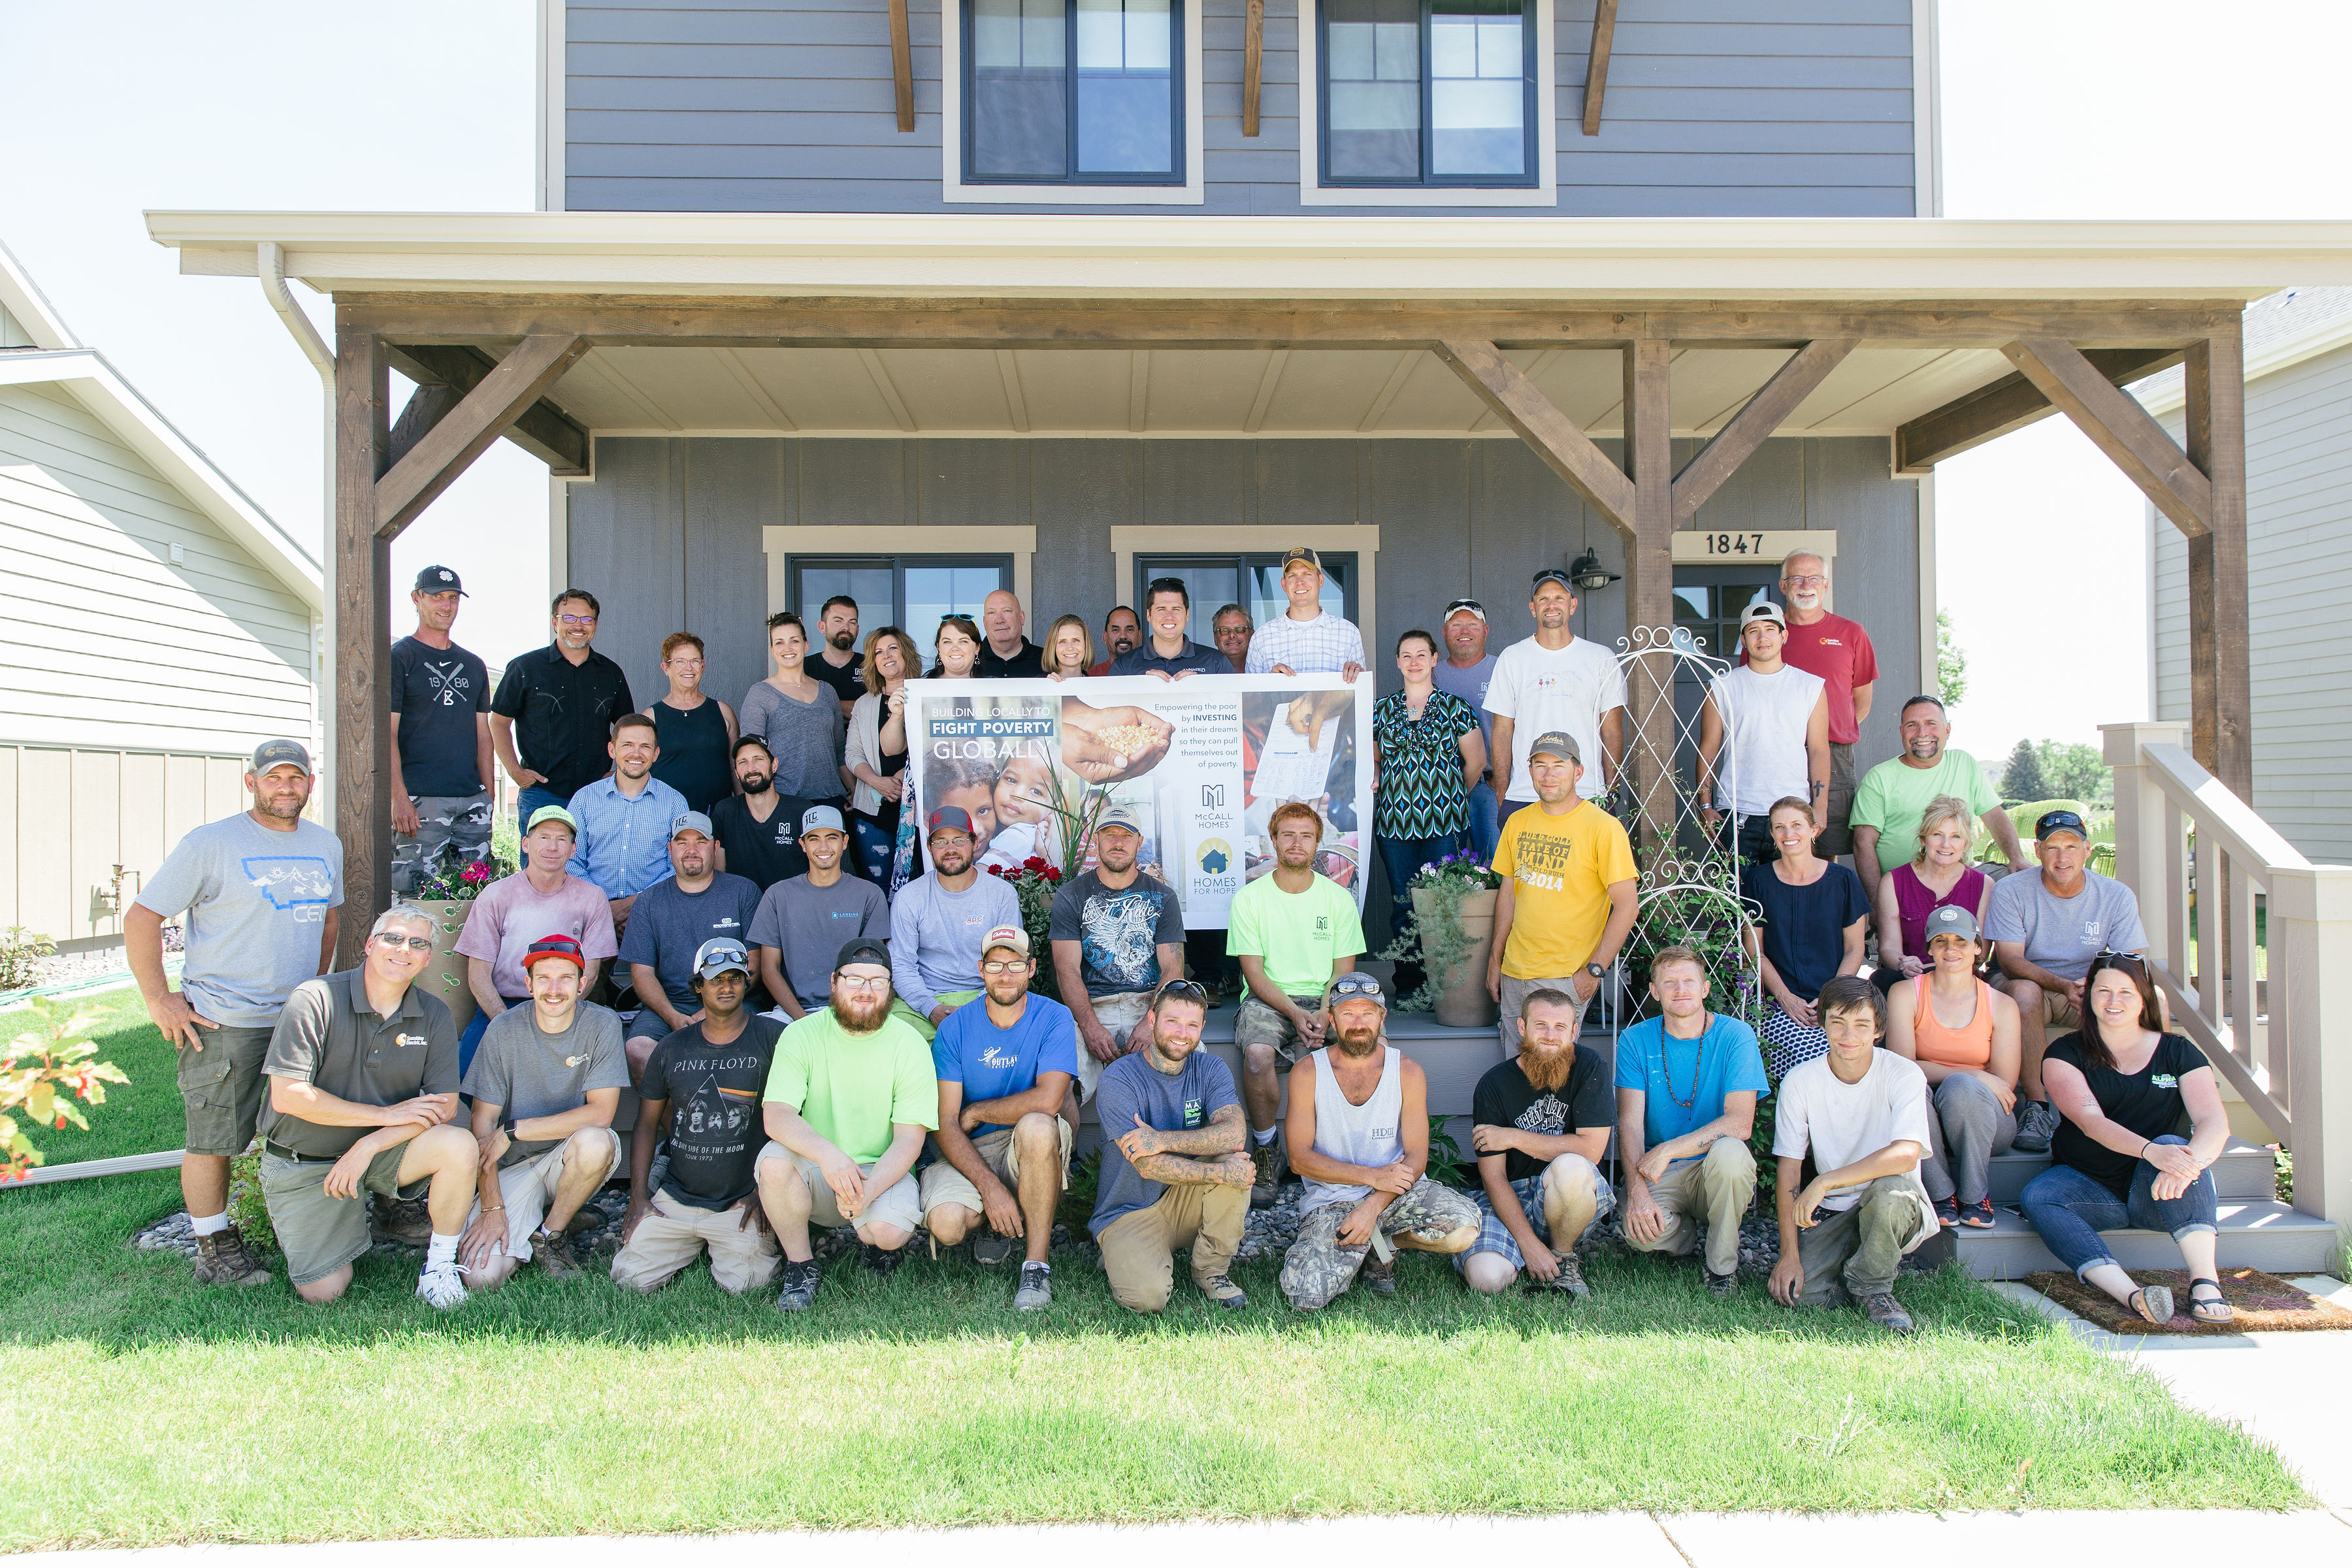 Over $100,000 raised for Home 4 Hope in Annafeld